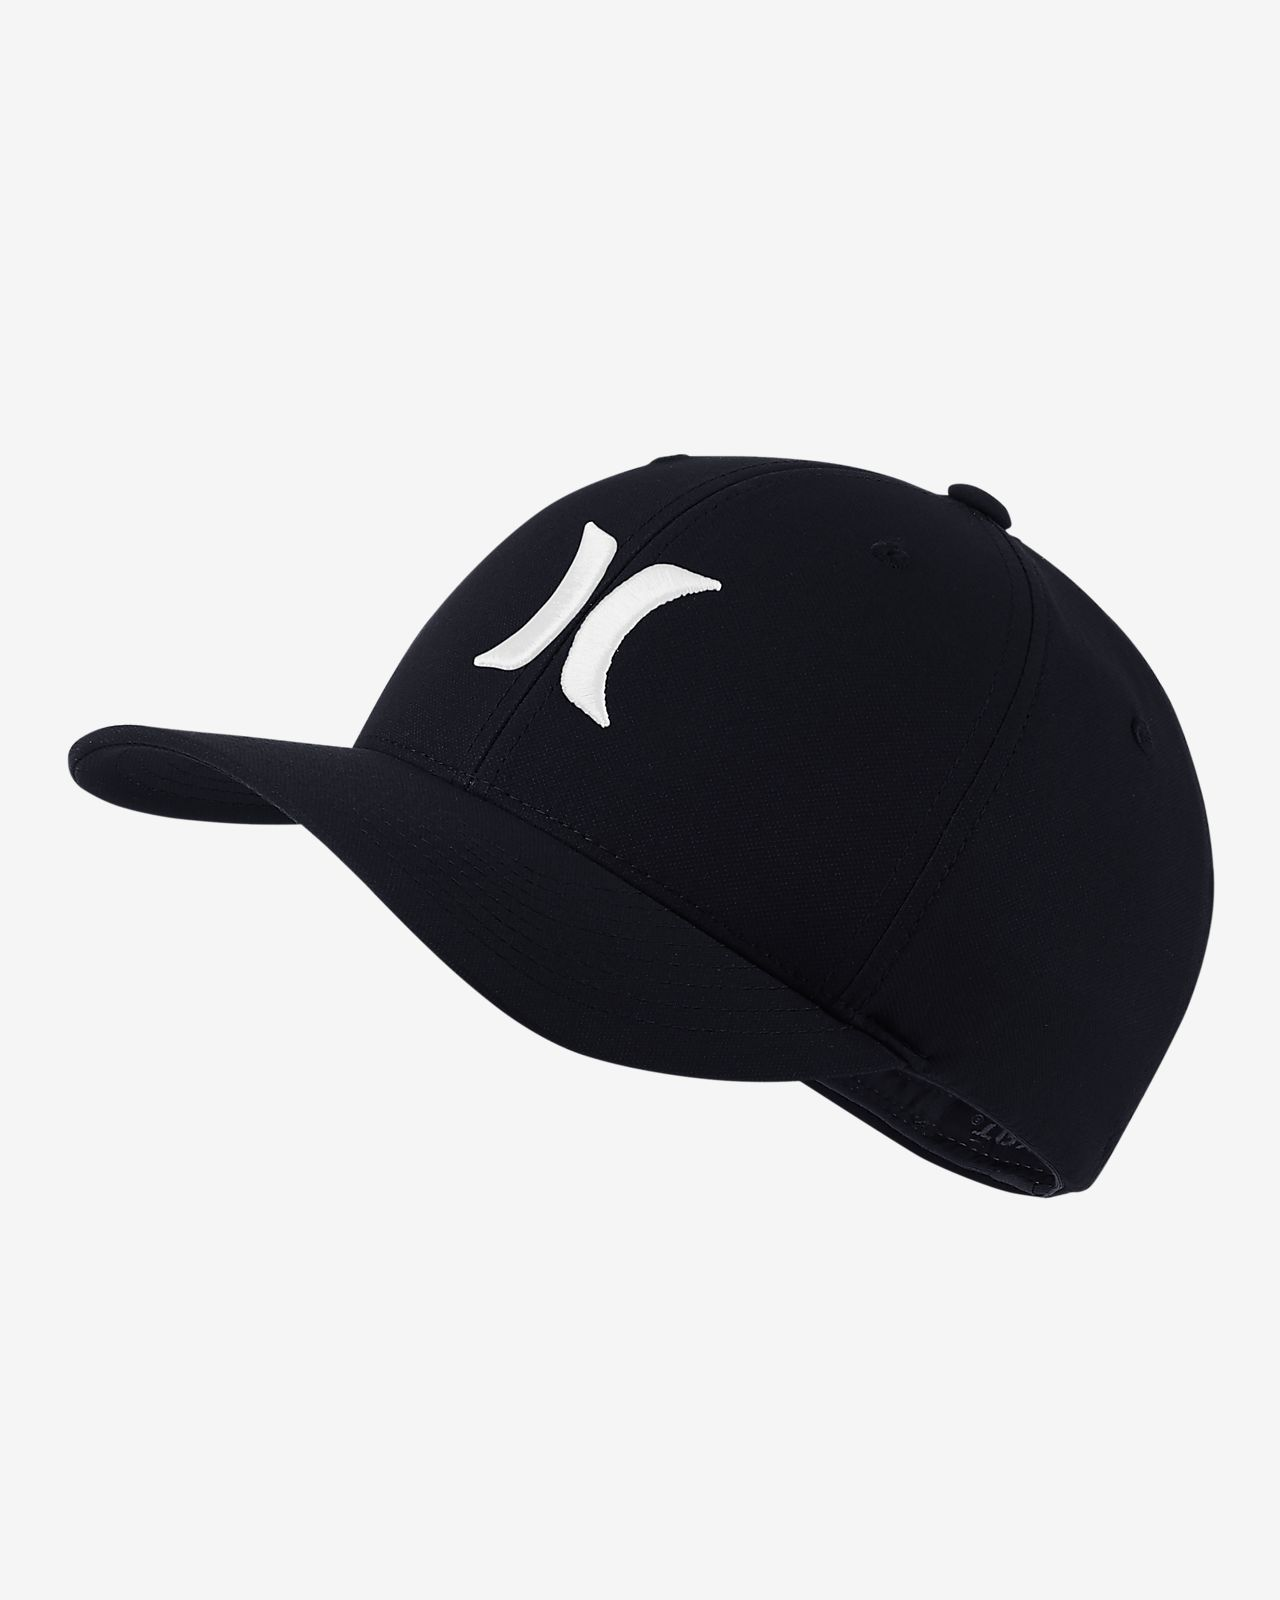 Hurley Dri-FIT One And Only tilpasset unisexcaps